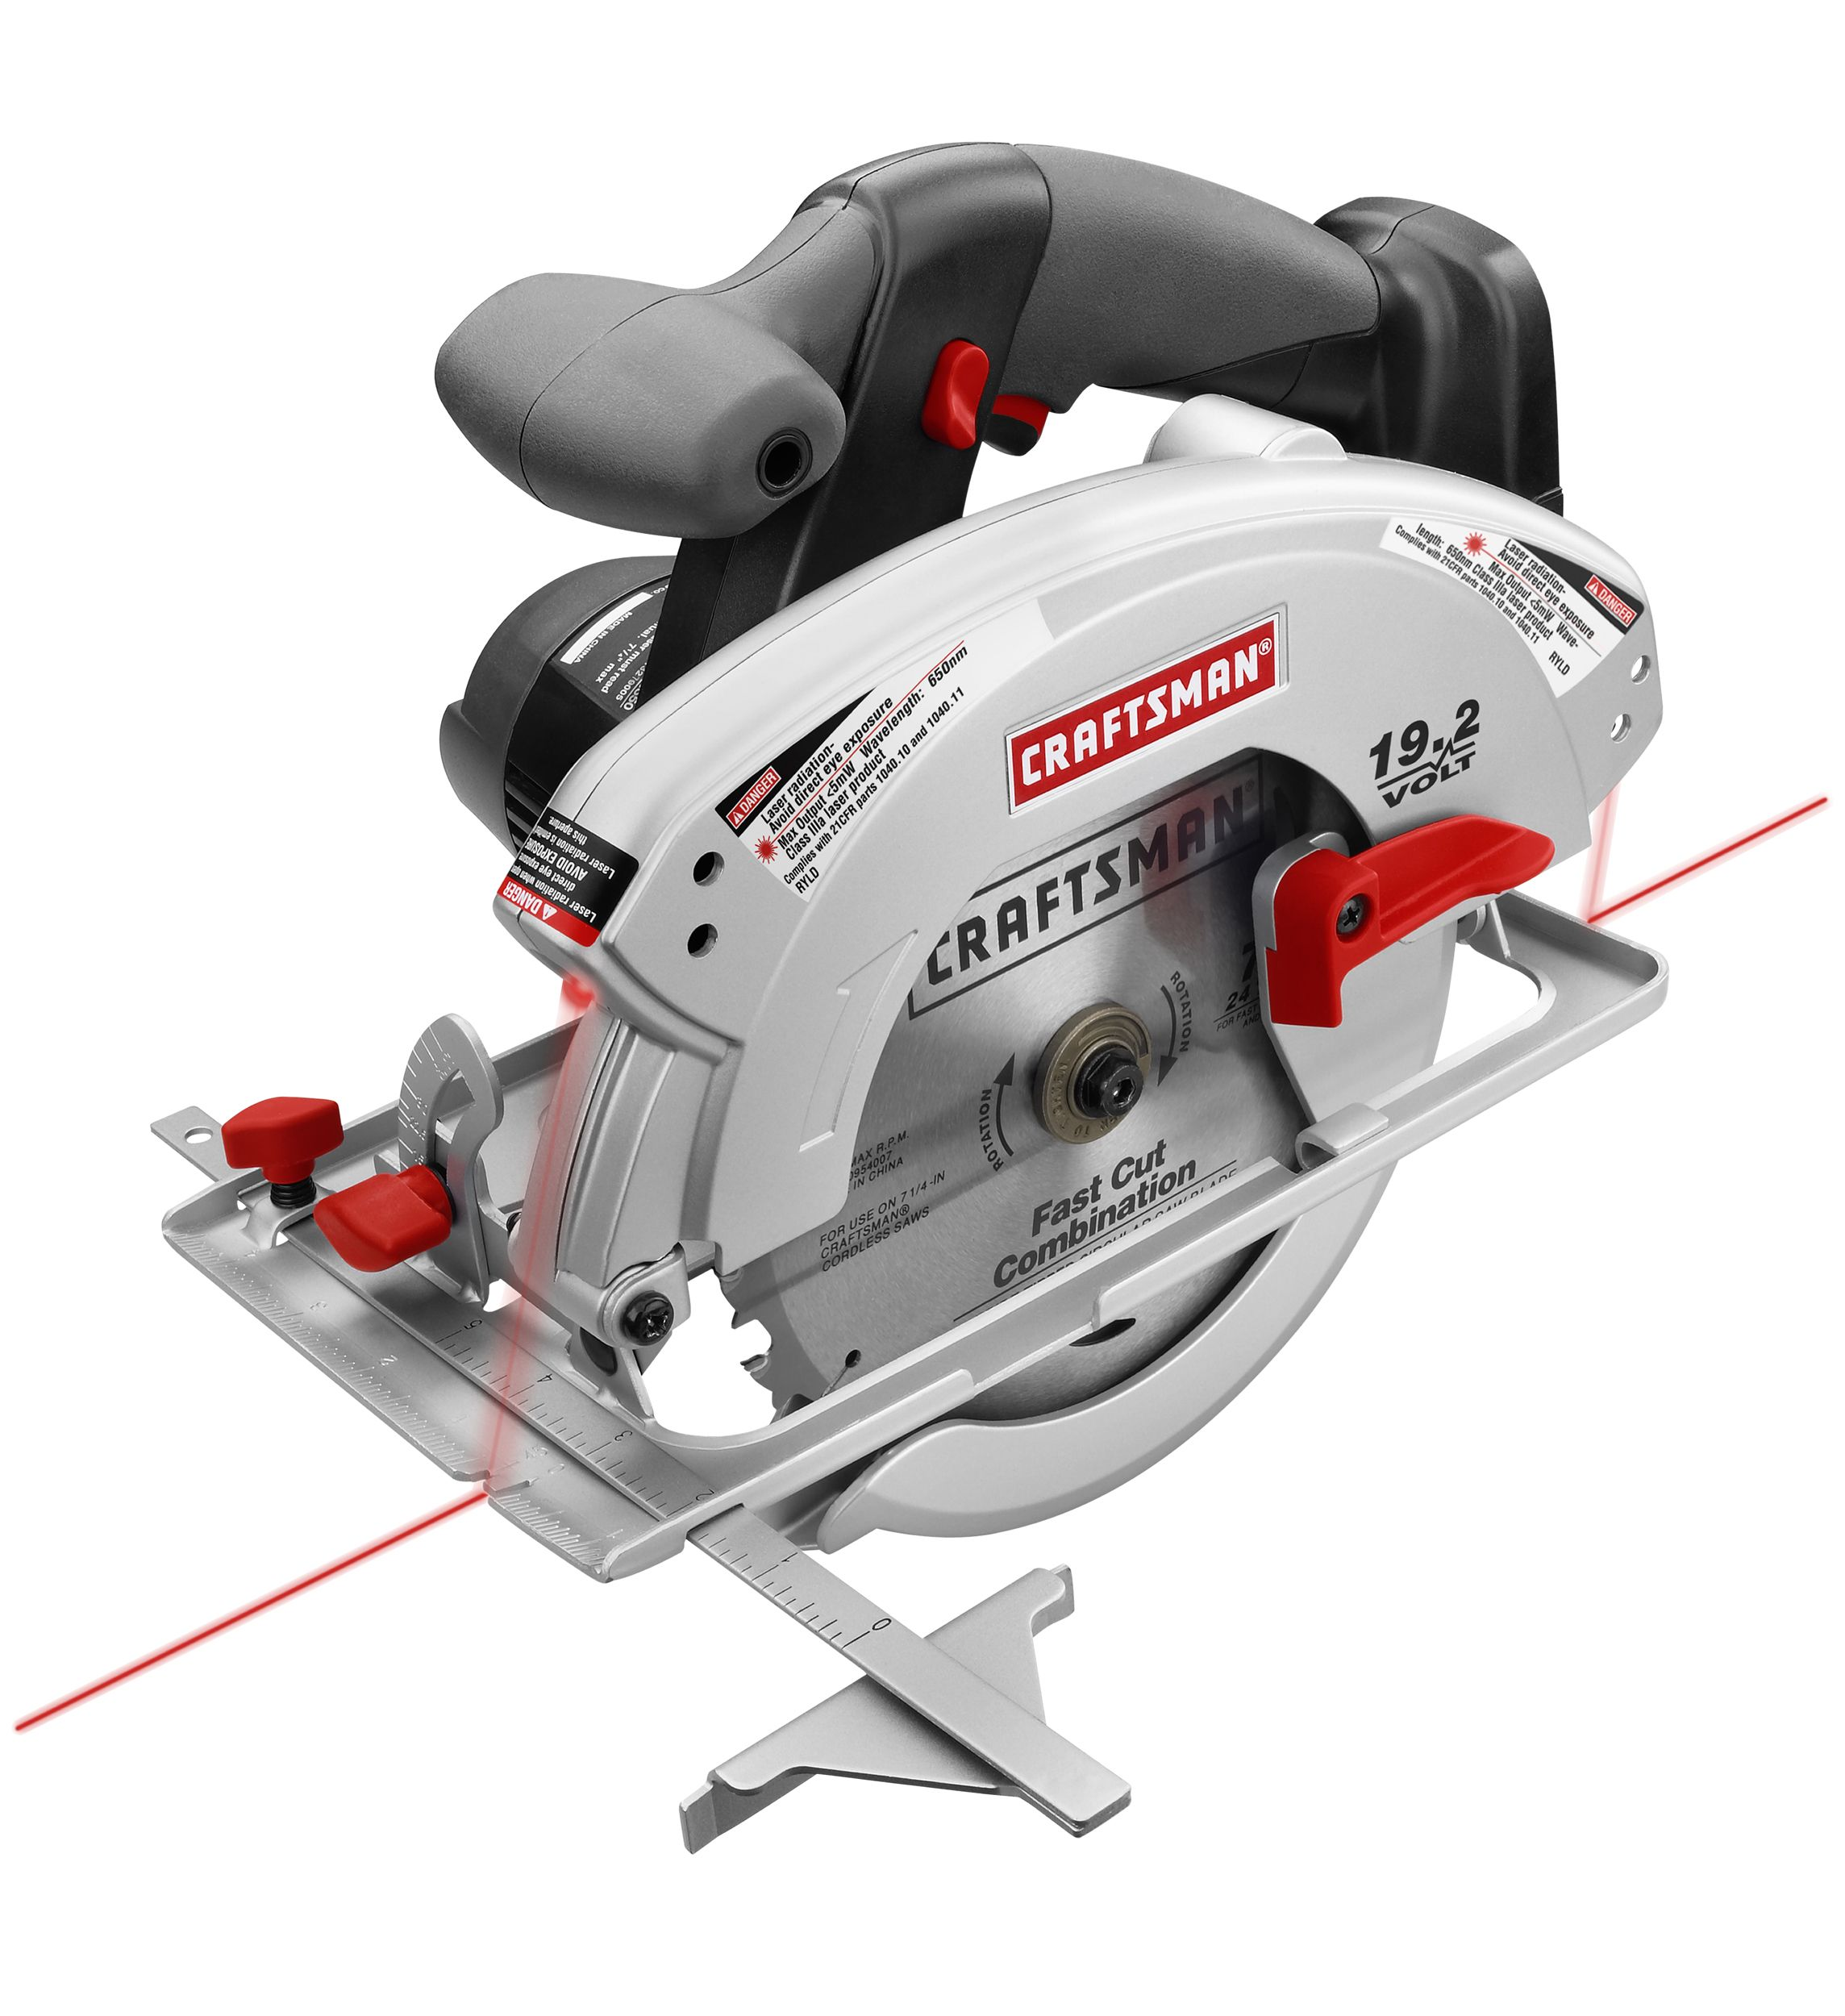 Craftsman C3 19.2 volt 7-1/4 Circular Saw with Laser